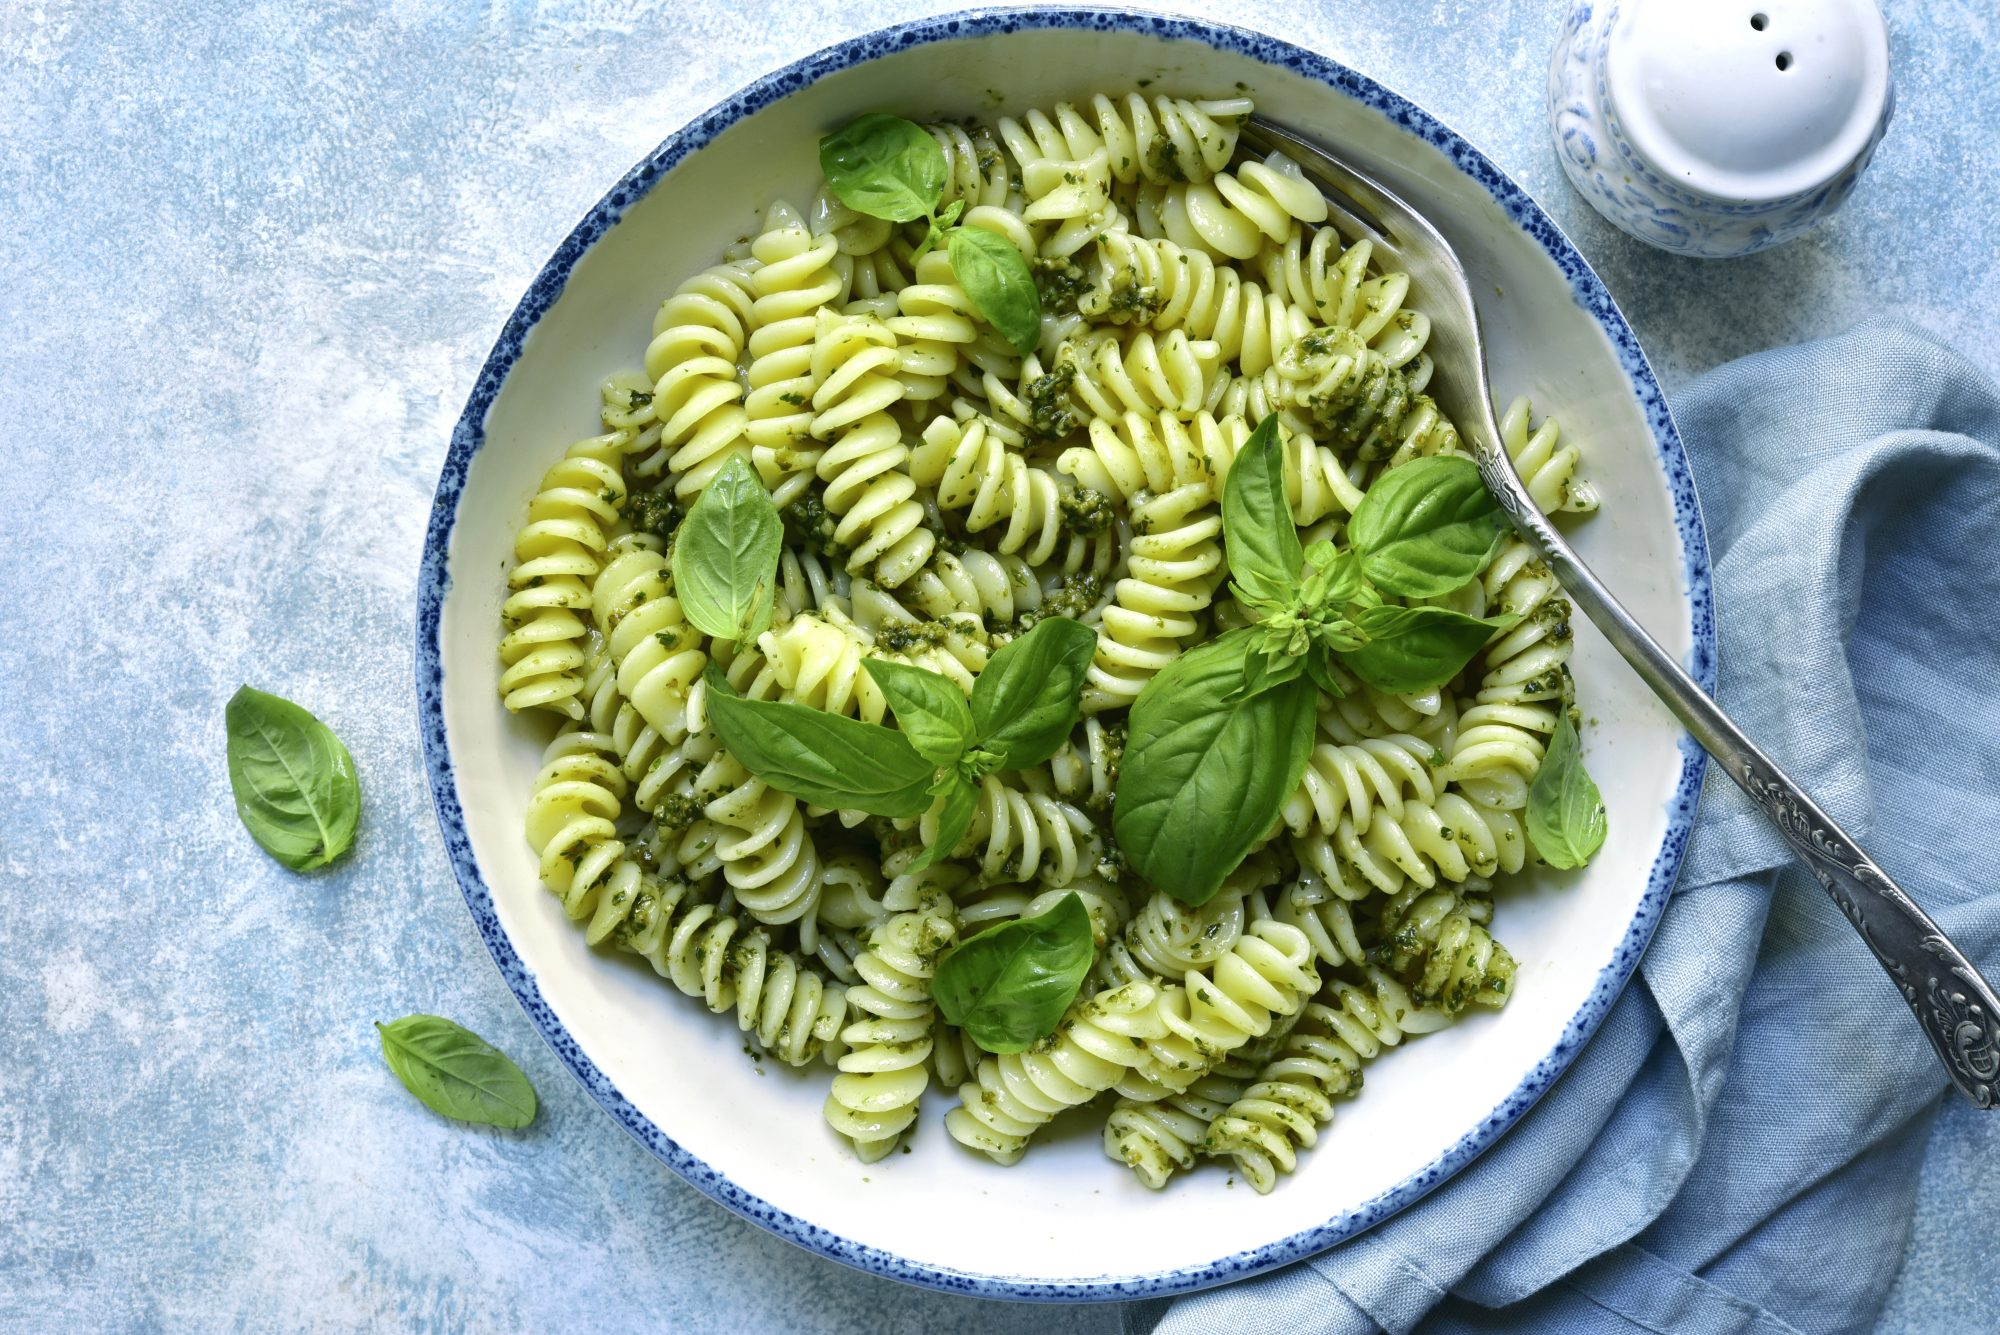 Fusilli pasta with pesto sauce in a white bowl on a light blue slate, stone or concrete background. Top view with copy space.